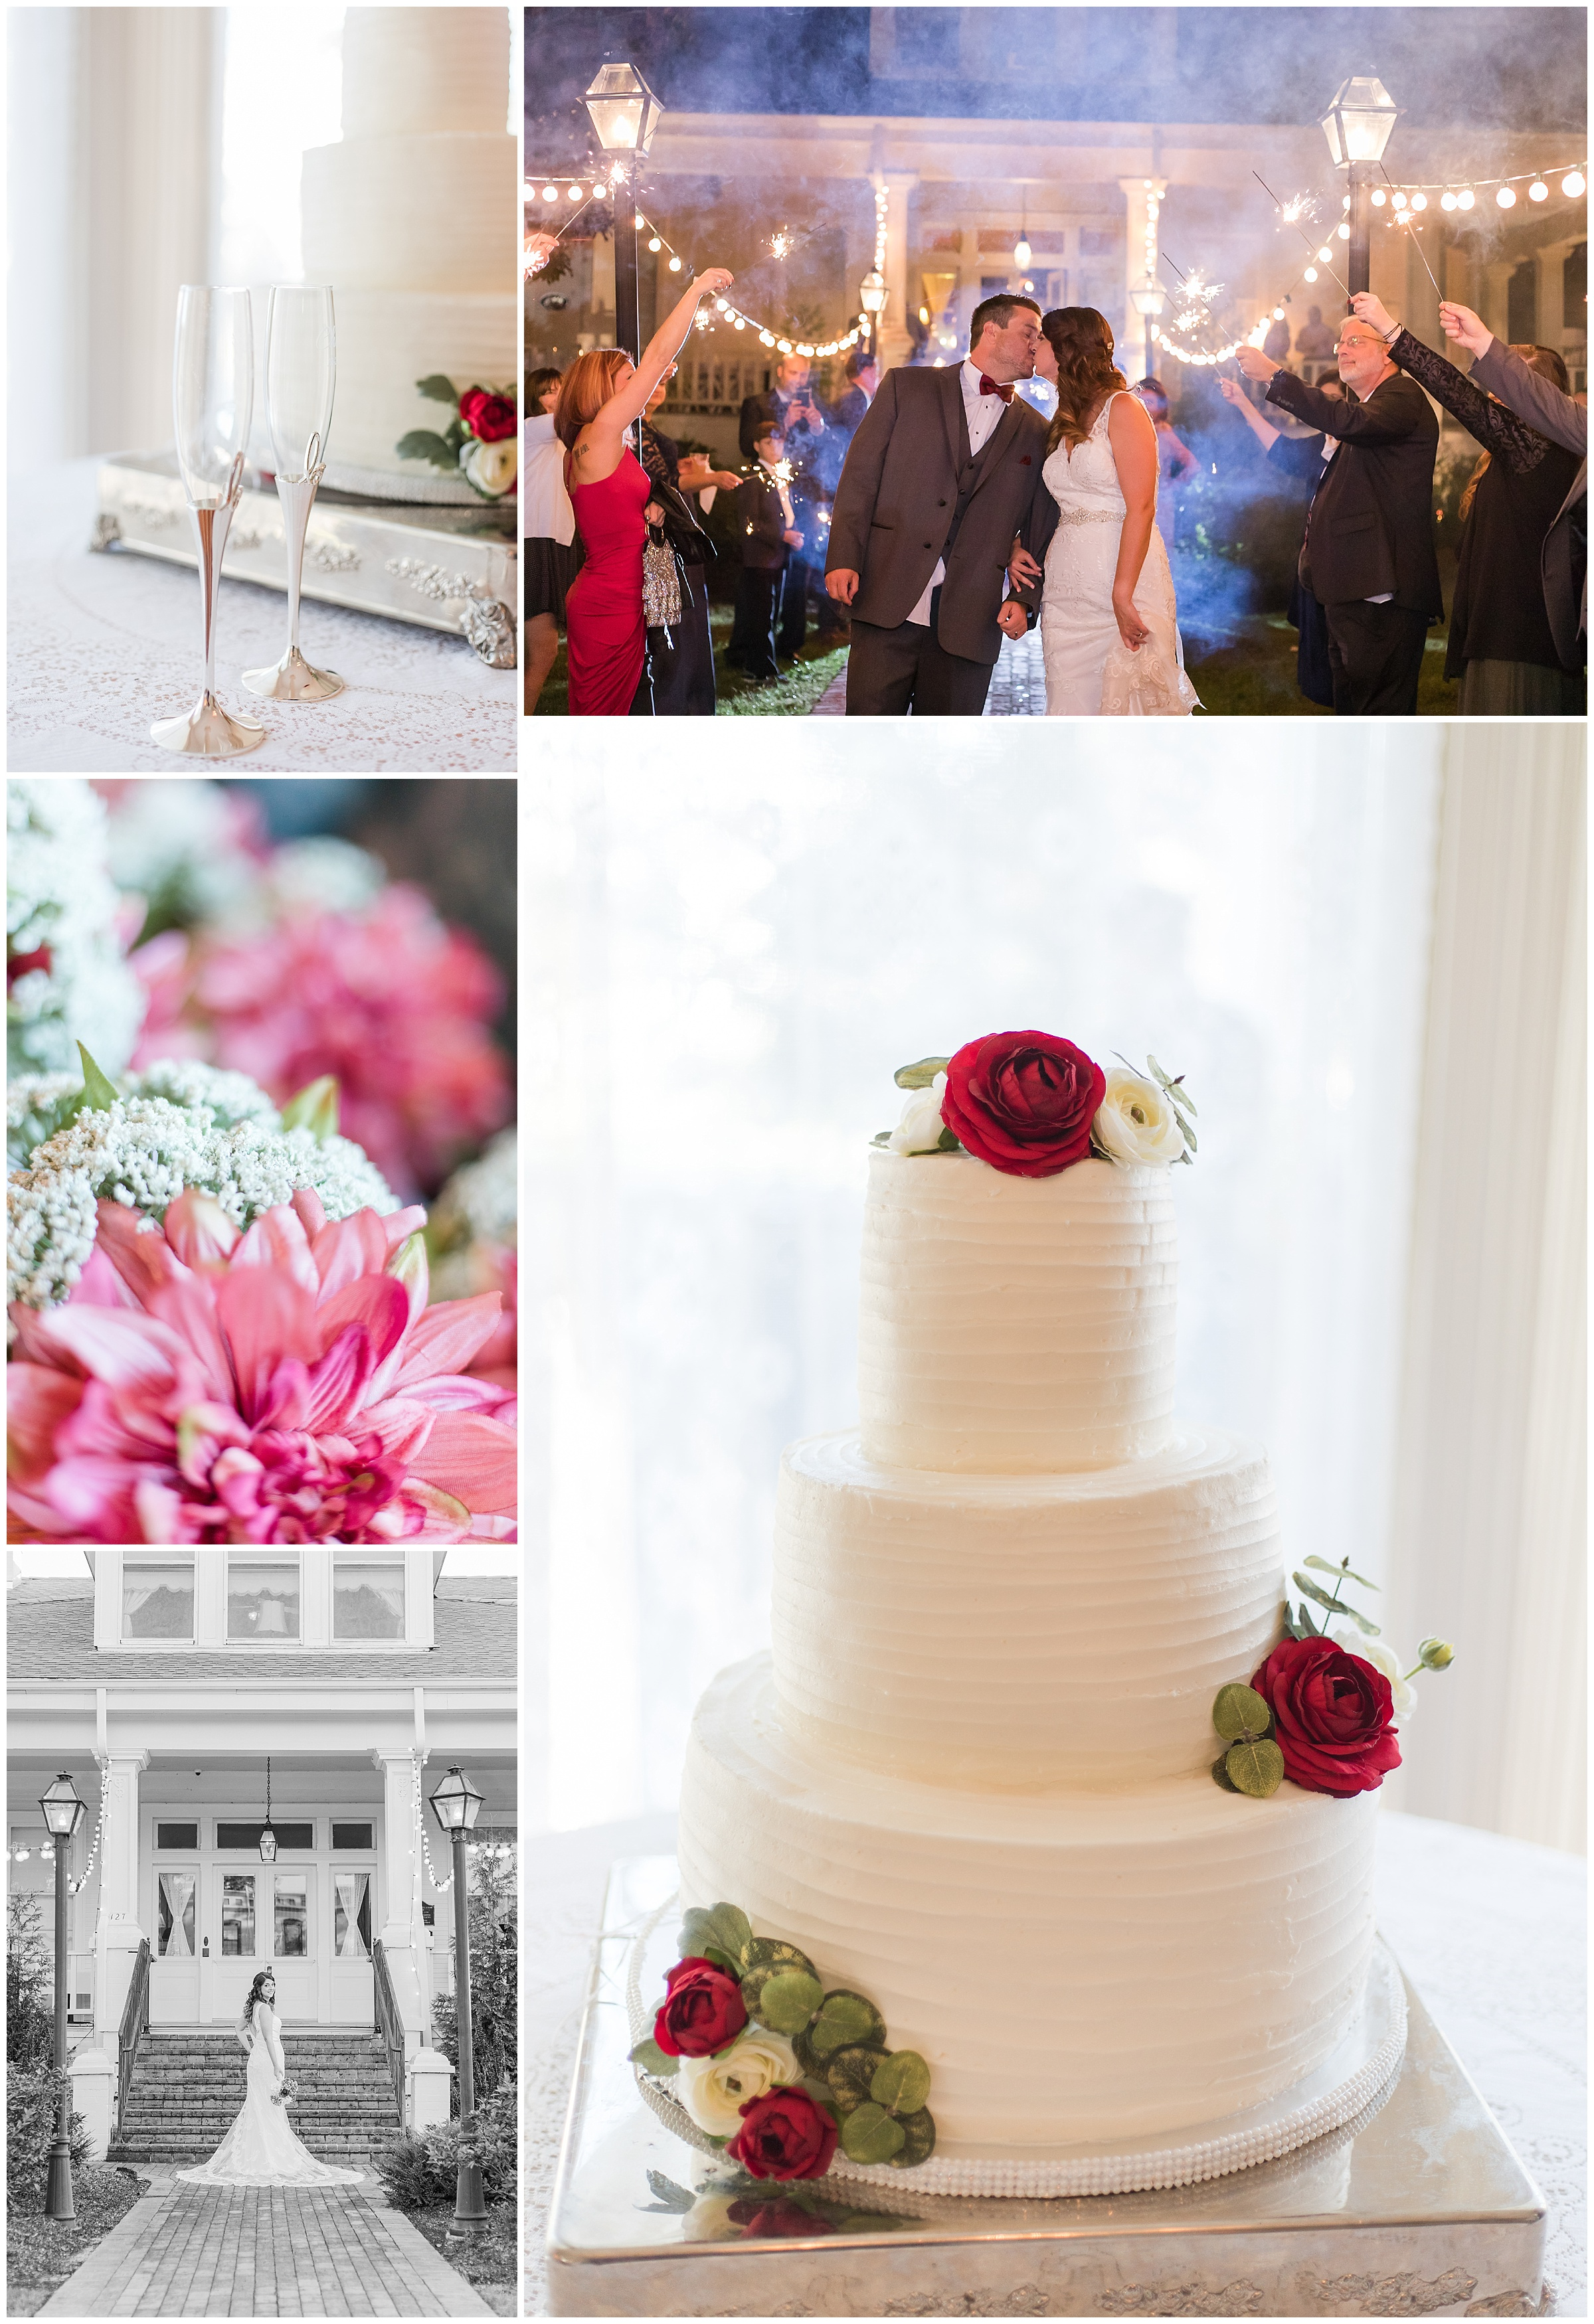 Bridget + Chad | A Perfect Fall Wedding at The Salmen-Fritchie House